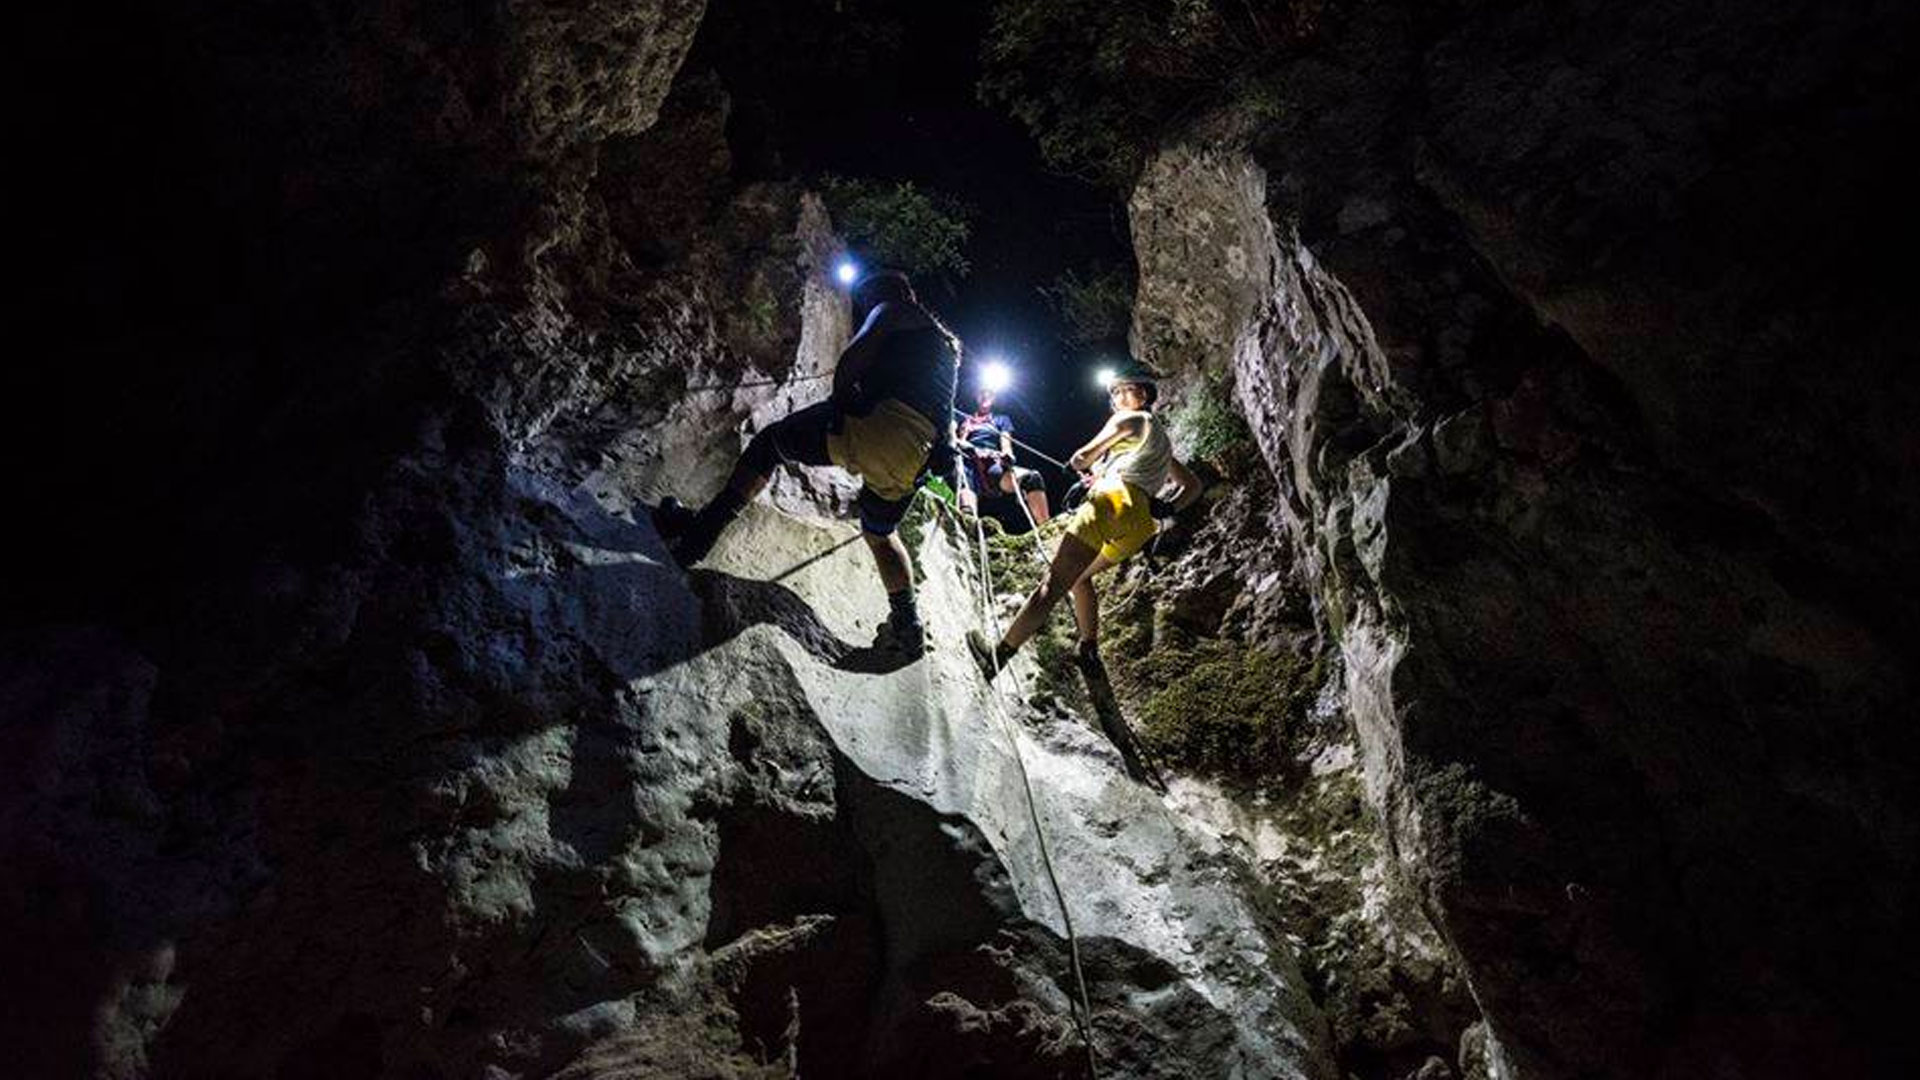 Canyoners during a night descent rappelling